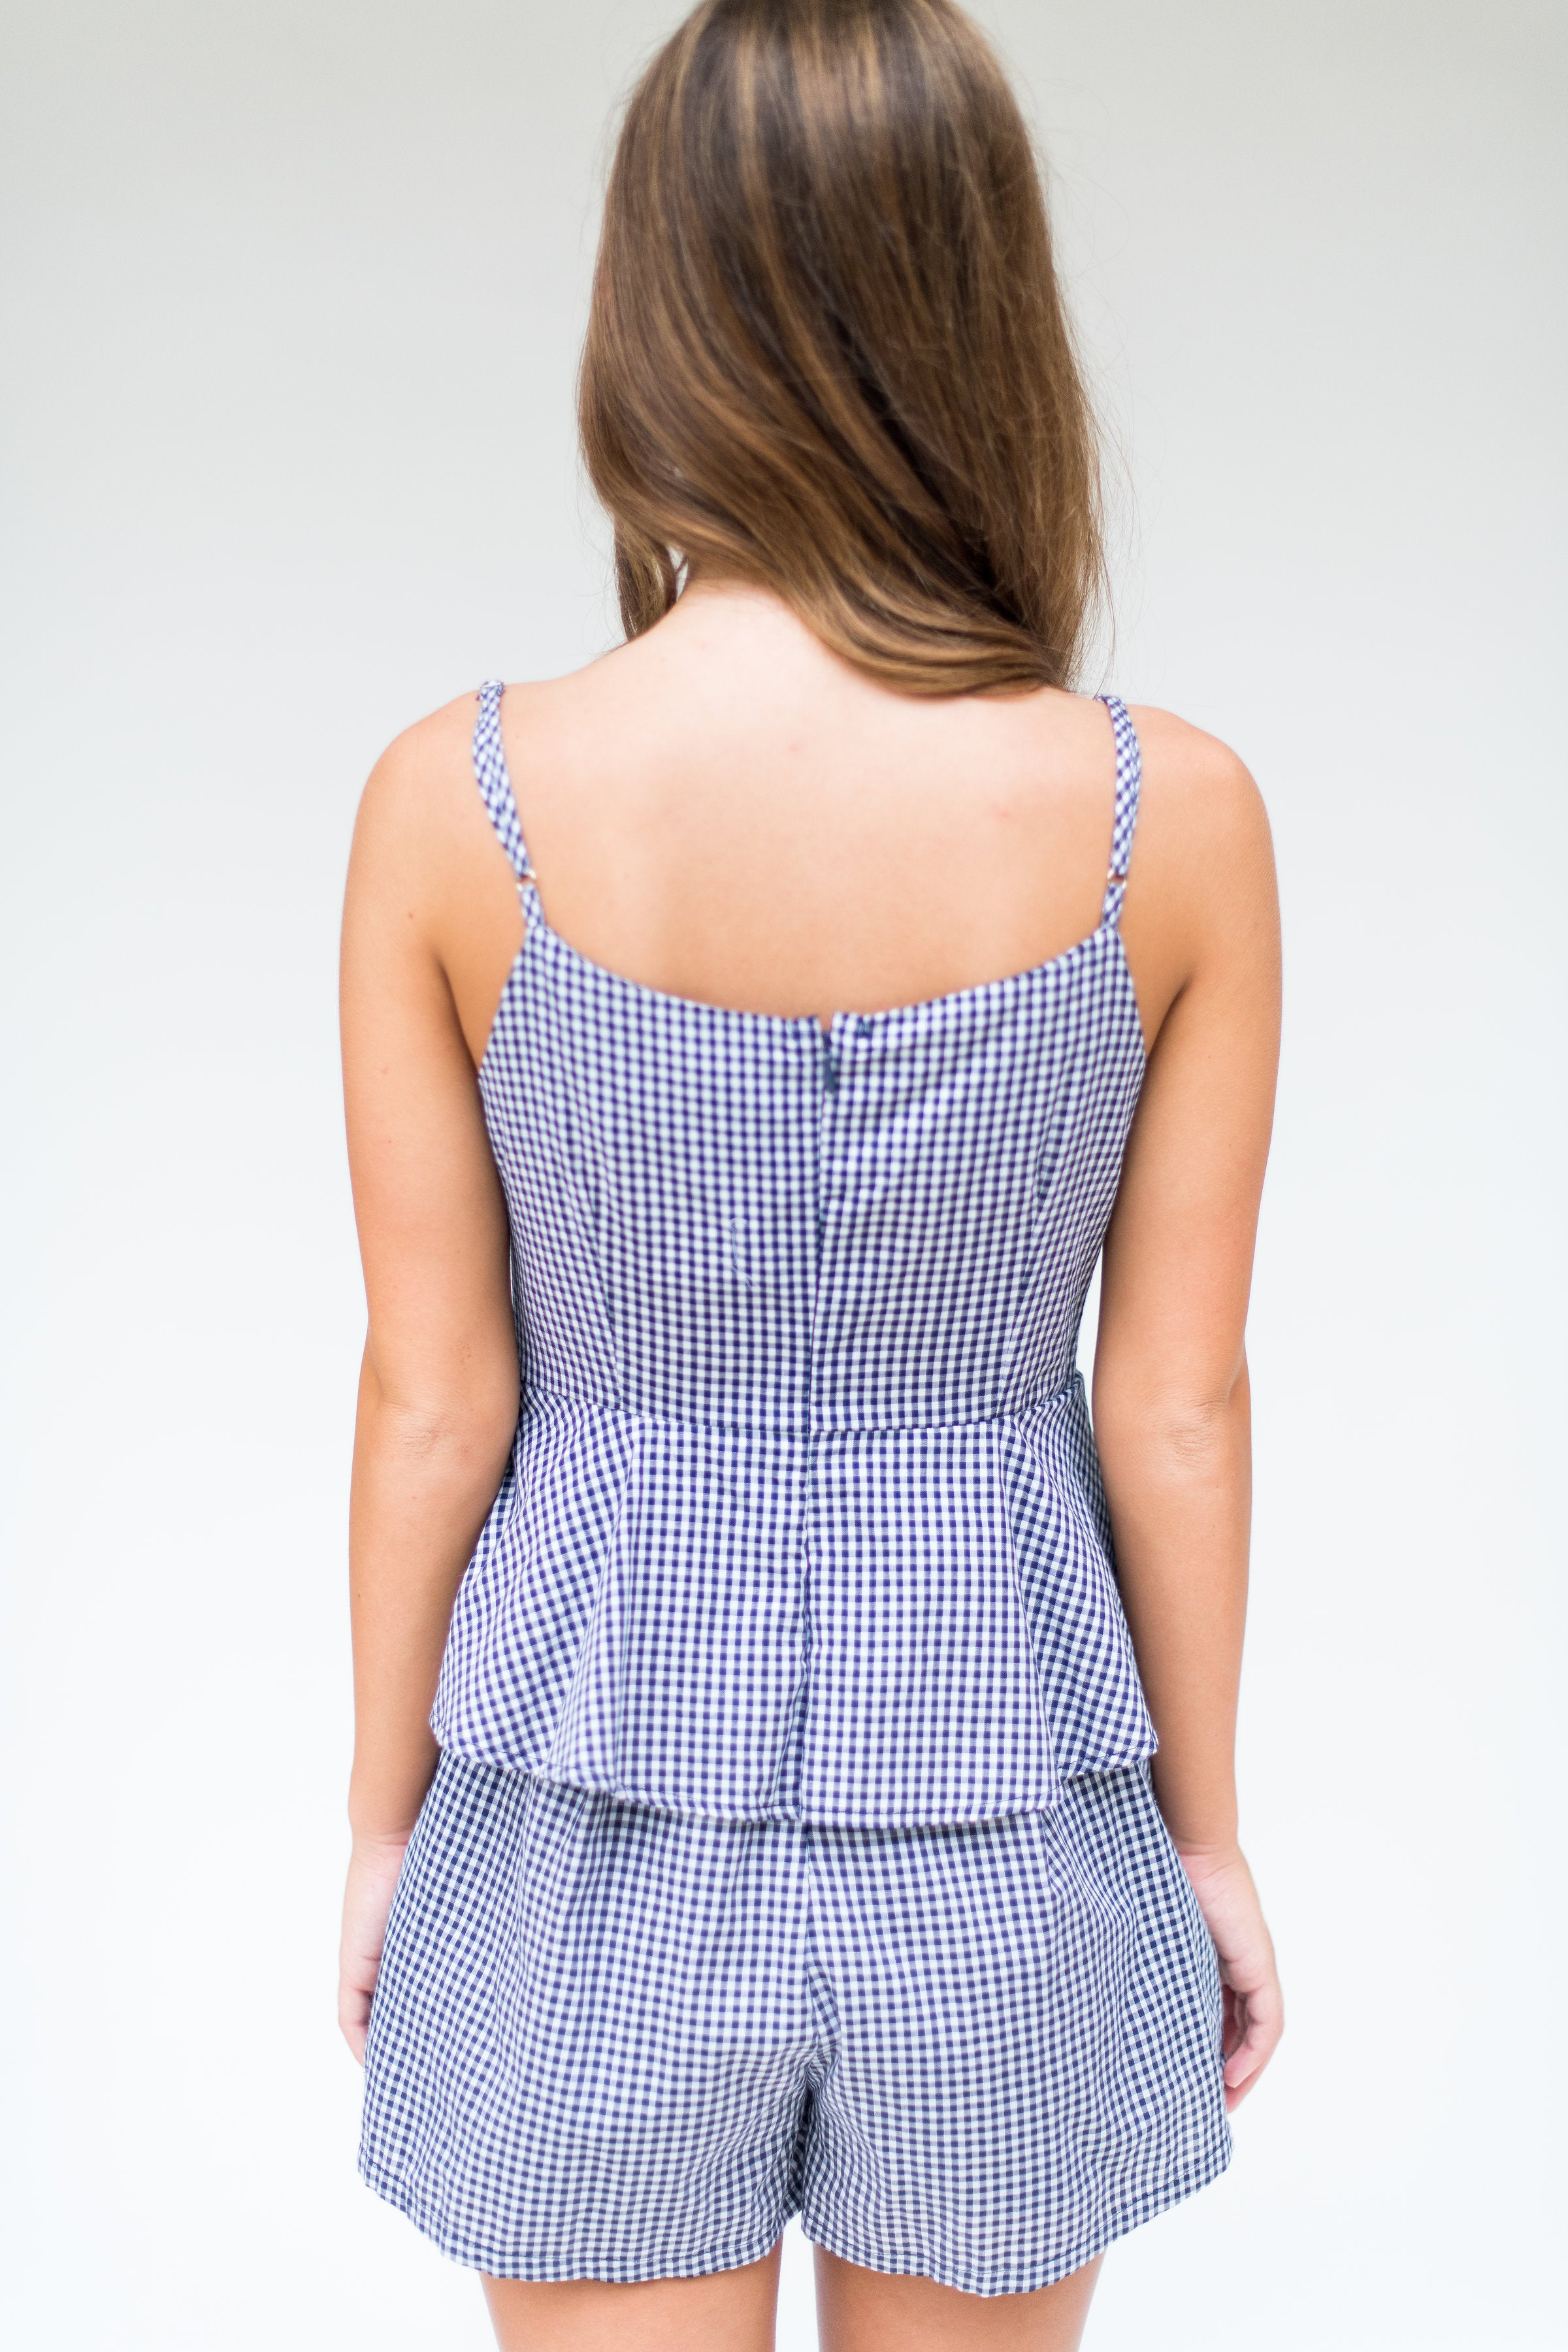 Check Yes or No Gingham Layered Romper with Bow:  Navy